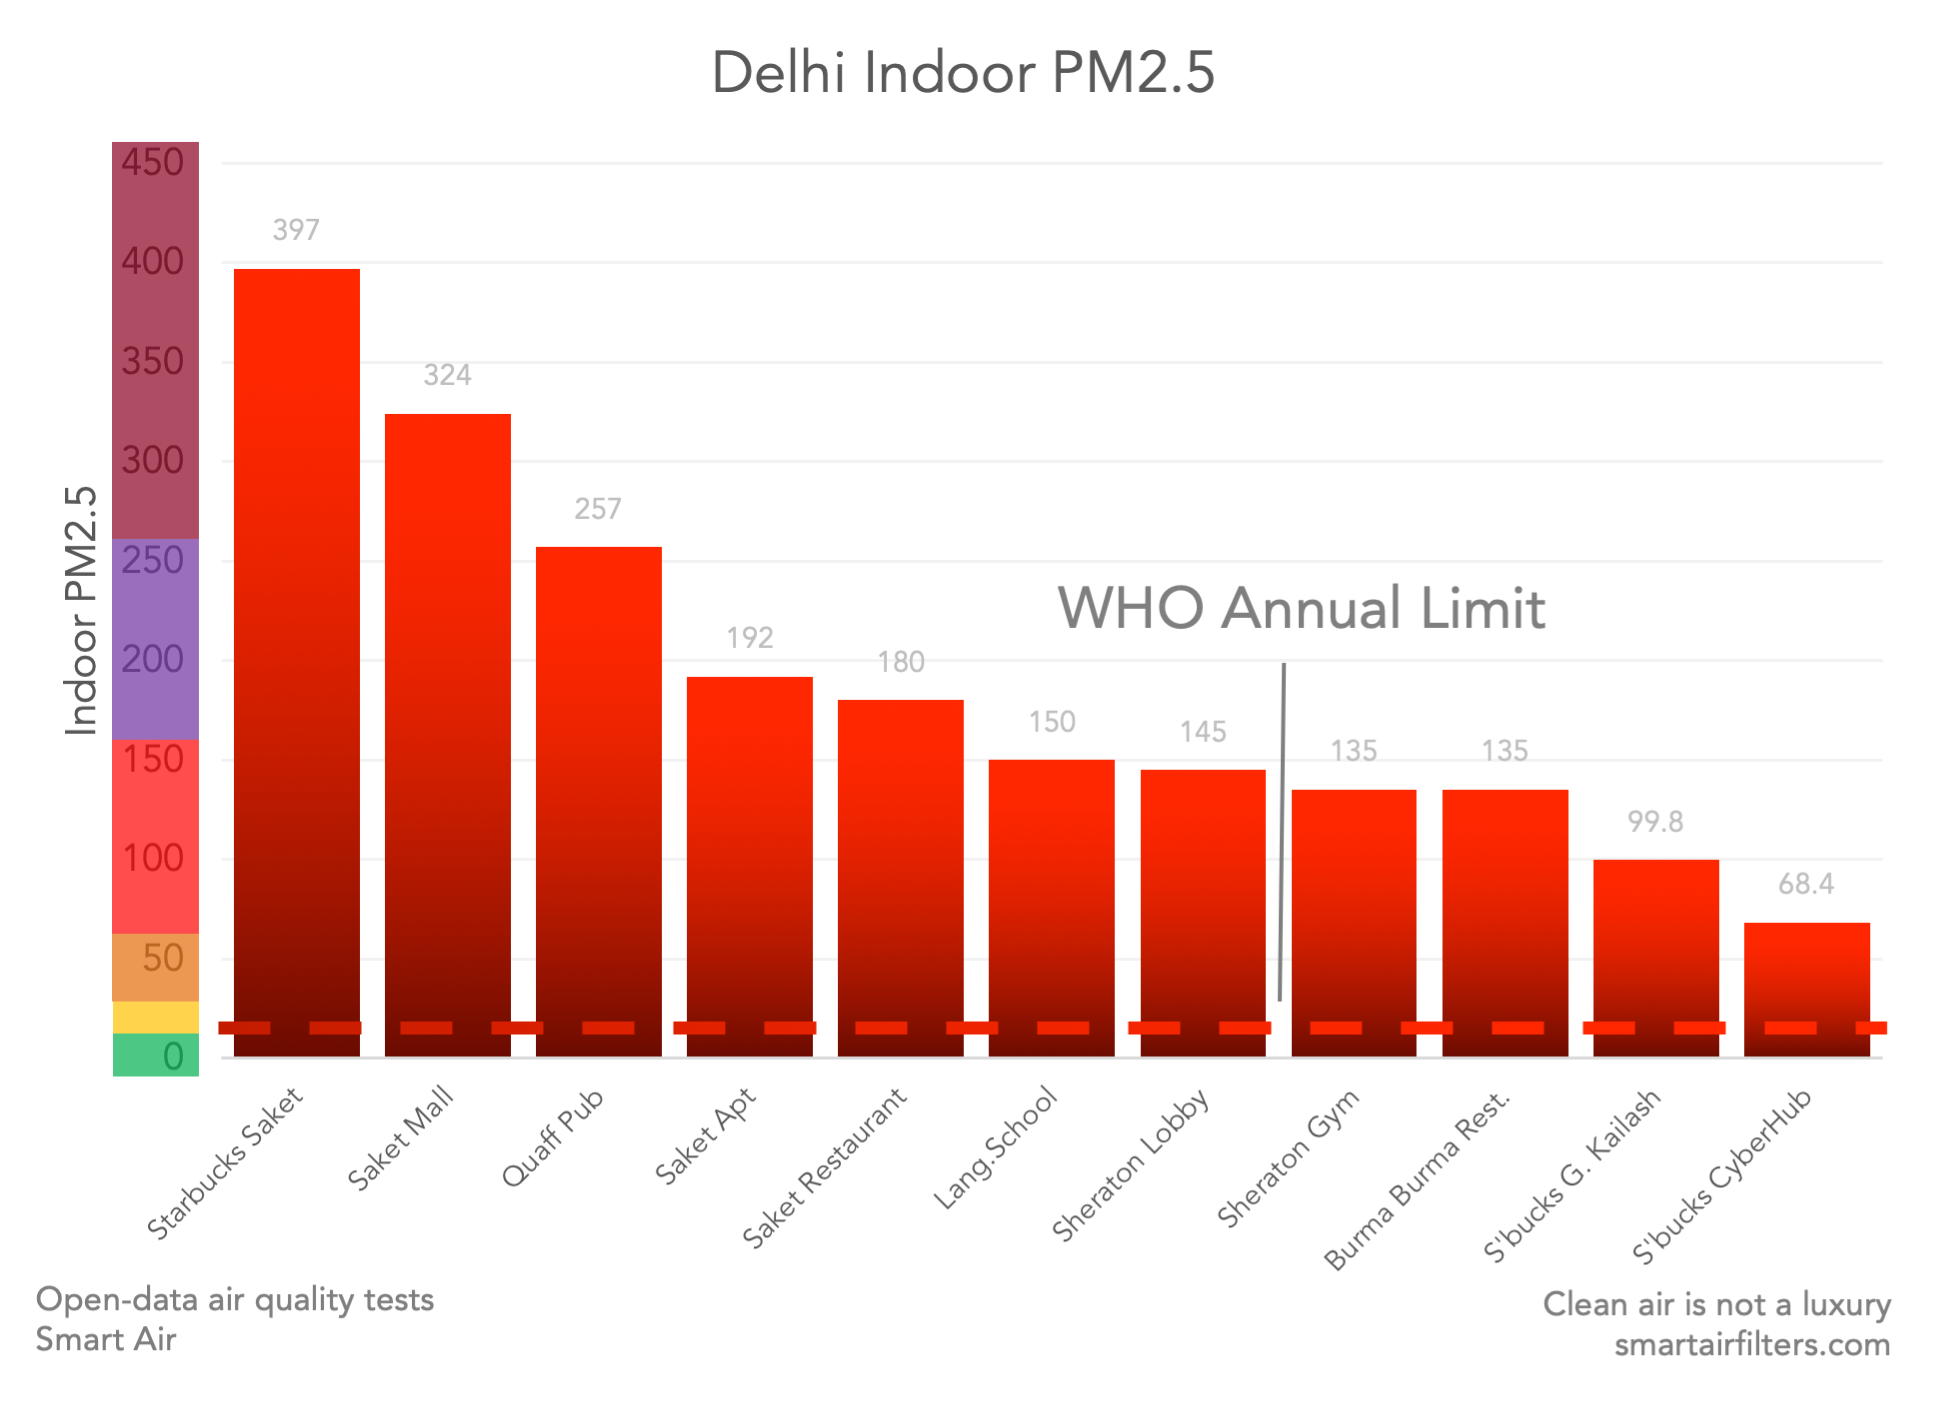 Delhi indoor PM2.5 vs. WHO annual limit